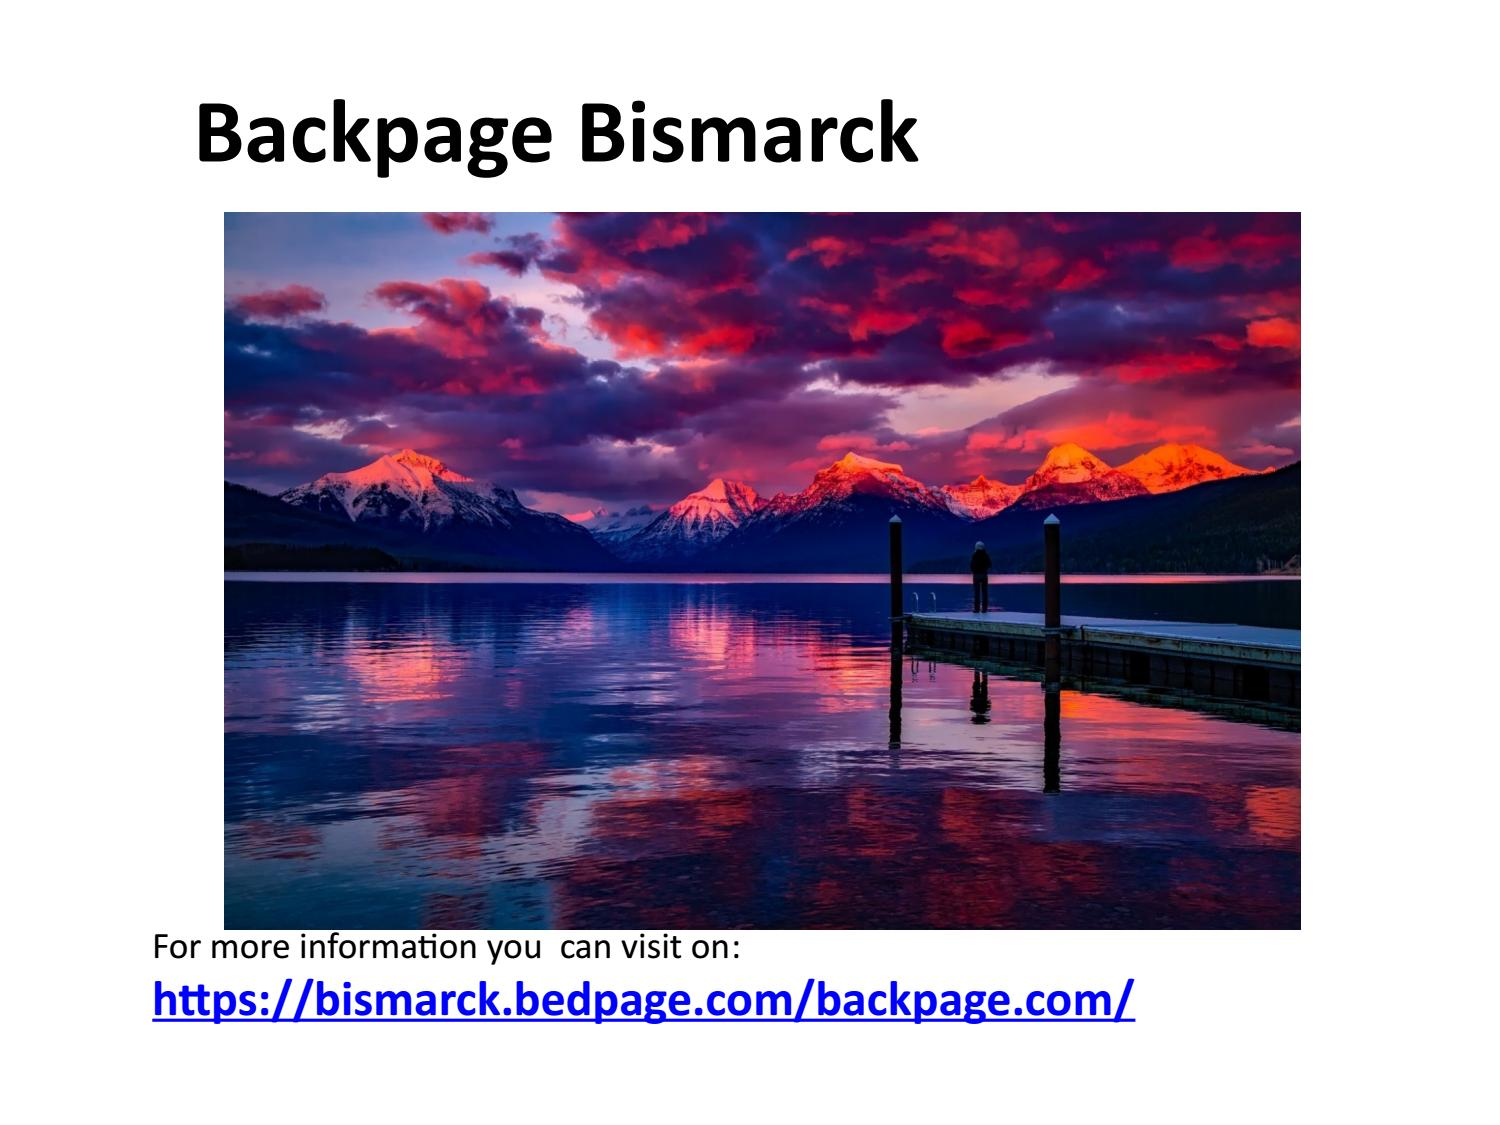 Backpage Bismarck Alternative To Back Page By Maary Sem Issuu